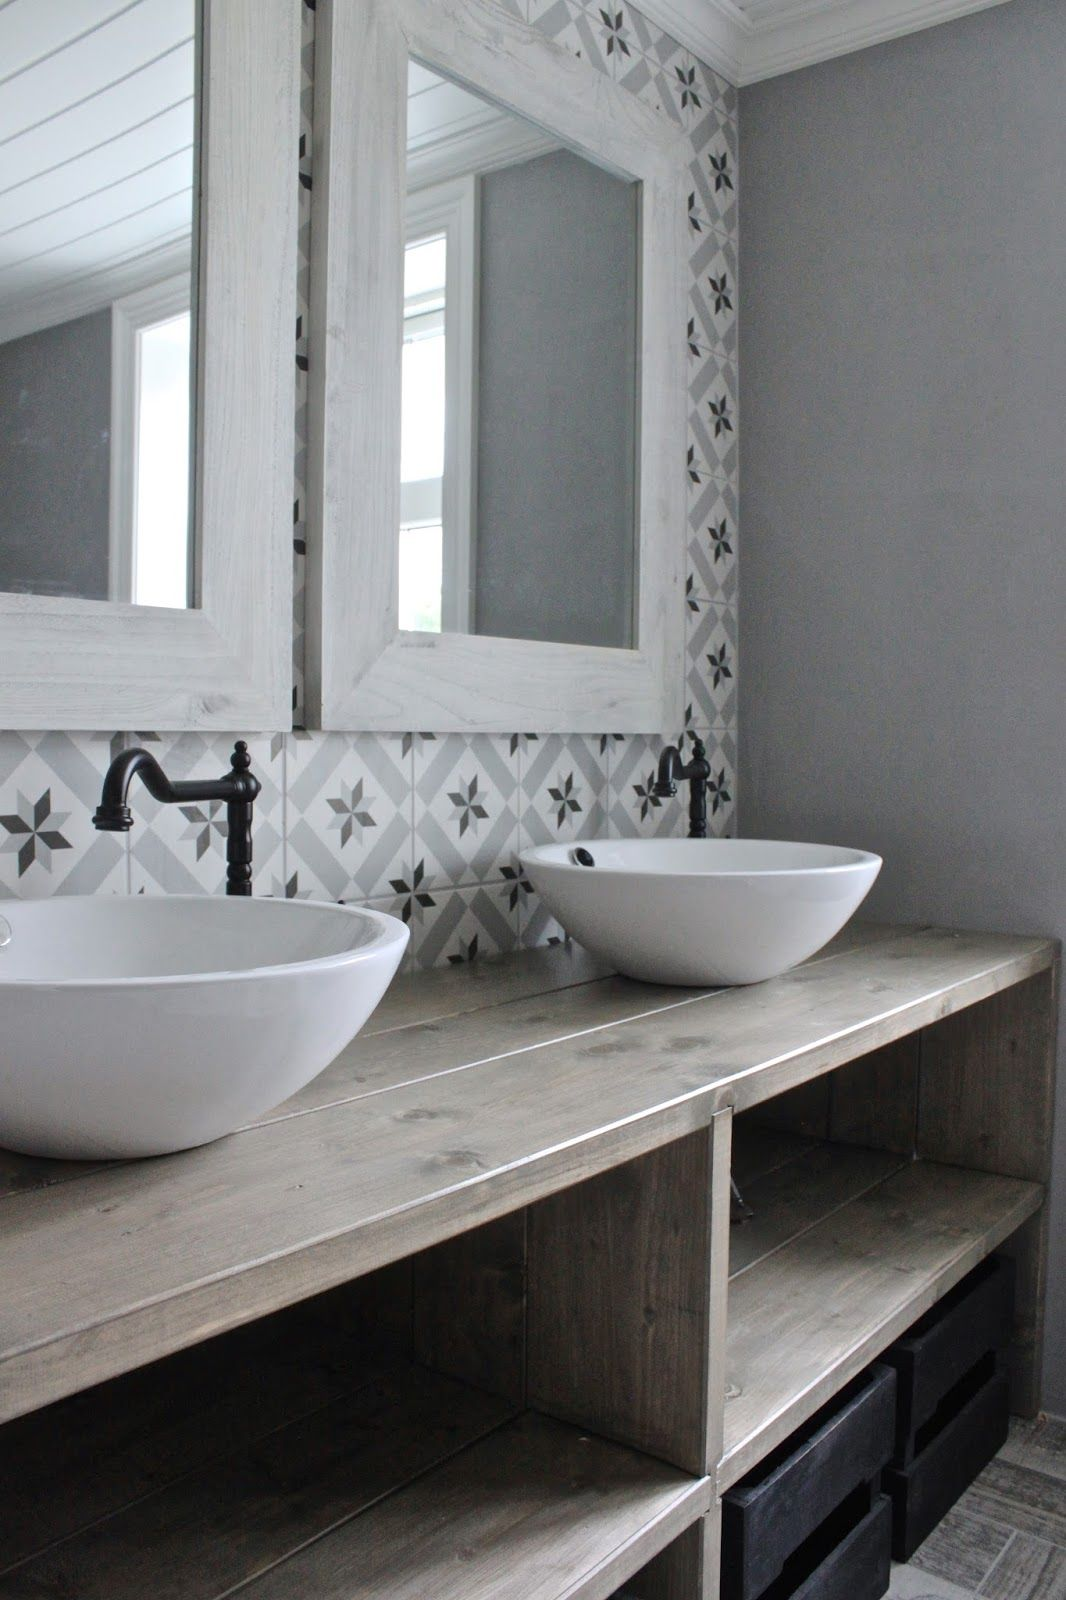 Vintage bathroom interior pin by keonfluxx on interior design  pinterest  room interior